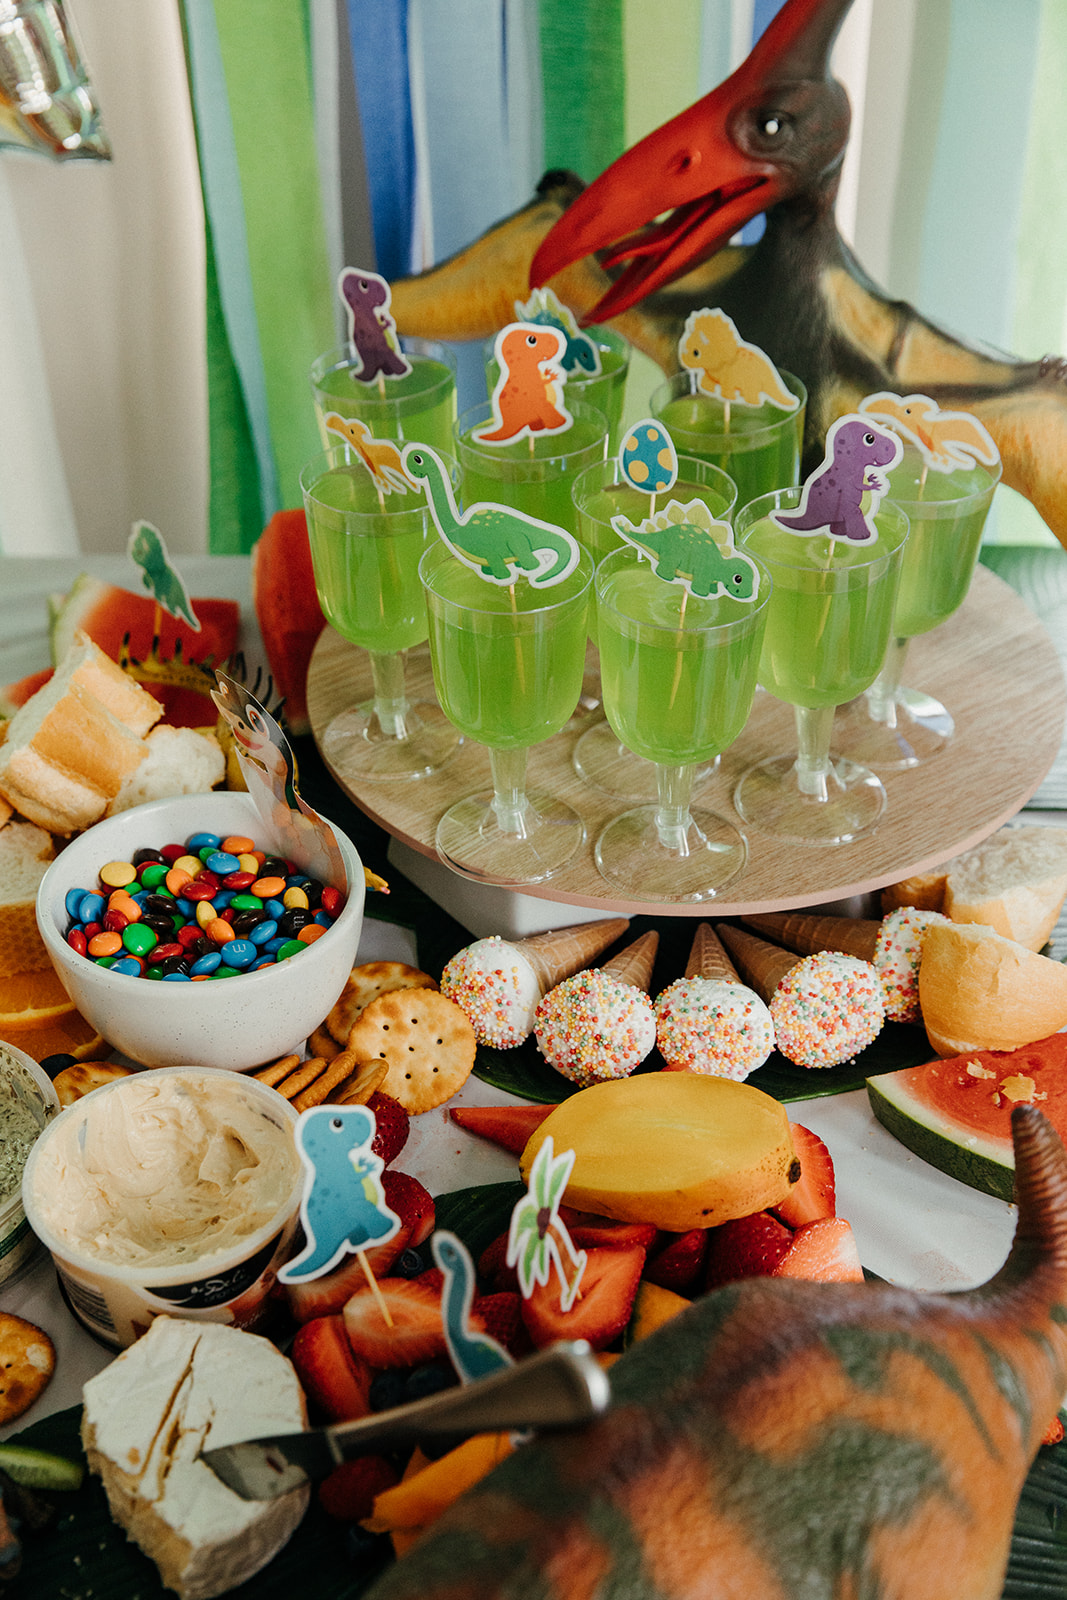 DIY Dinosaur party